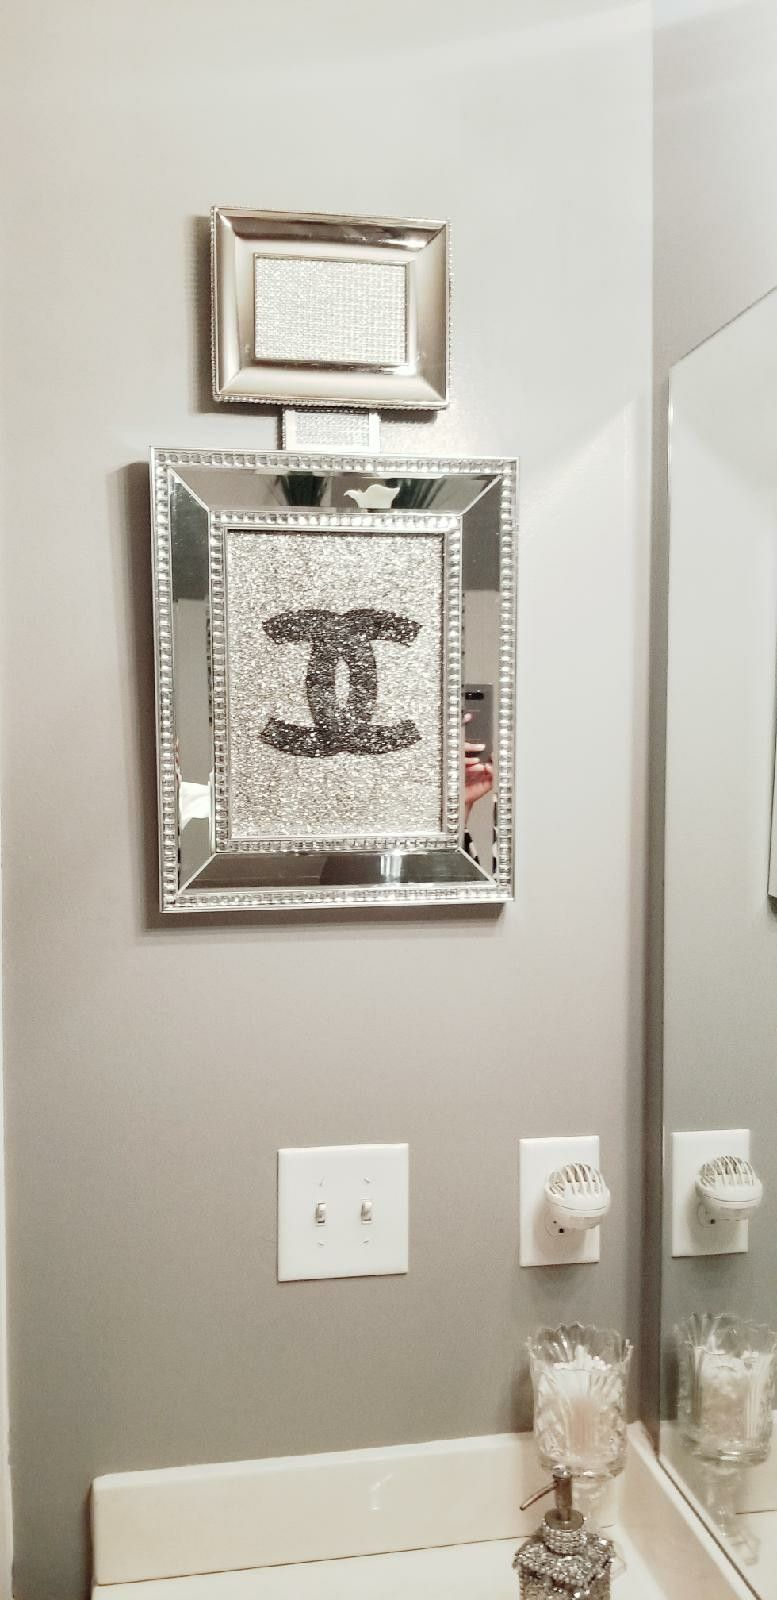 Chanel Bottle Bathroom Wall Decor Created From Picture Frames Glam Wall Decor Decor Wall Decor Bedroom